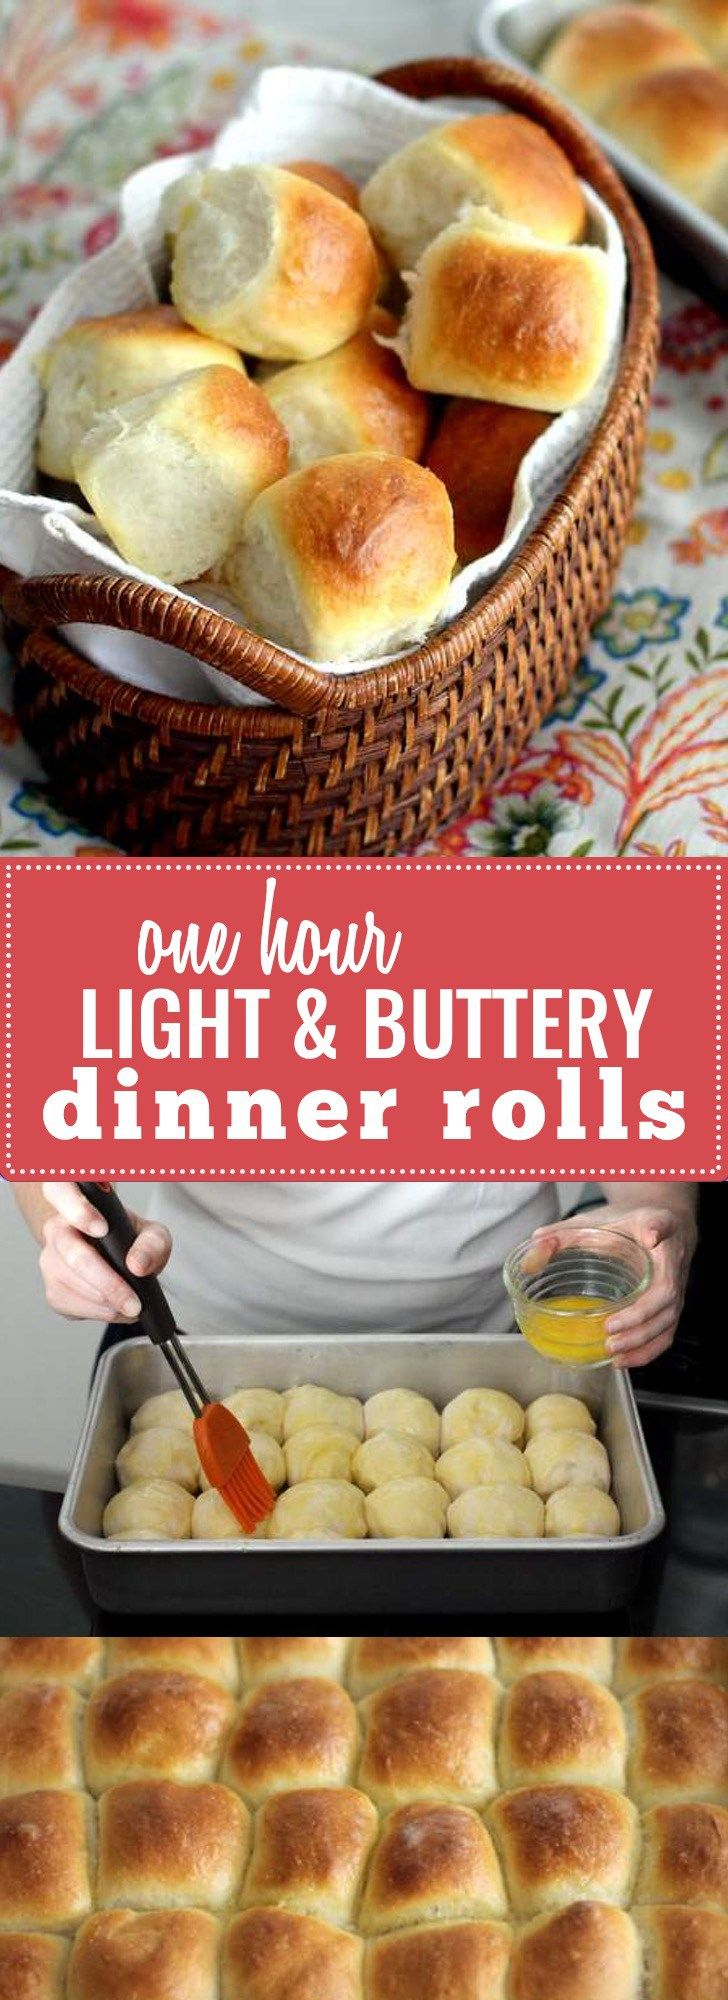 and Buttery Dinner Rolls- Have delicious, buttery, warm dinner rolls ...